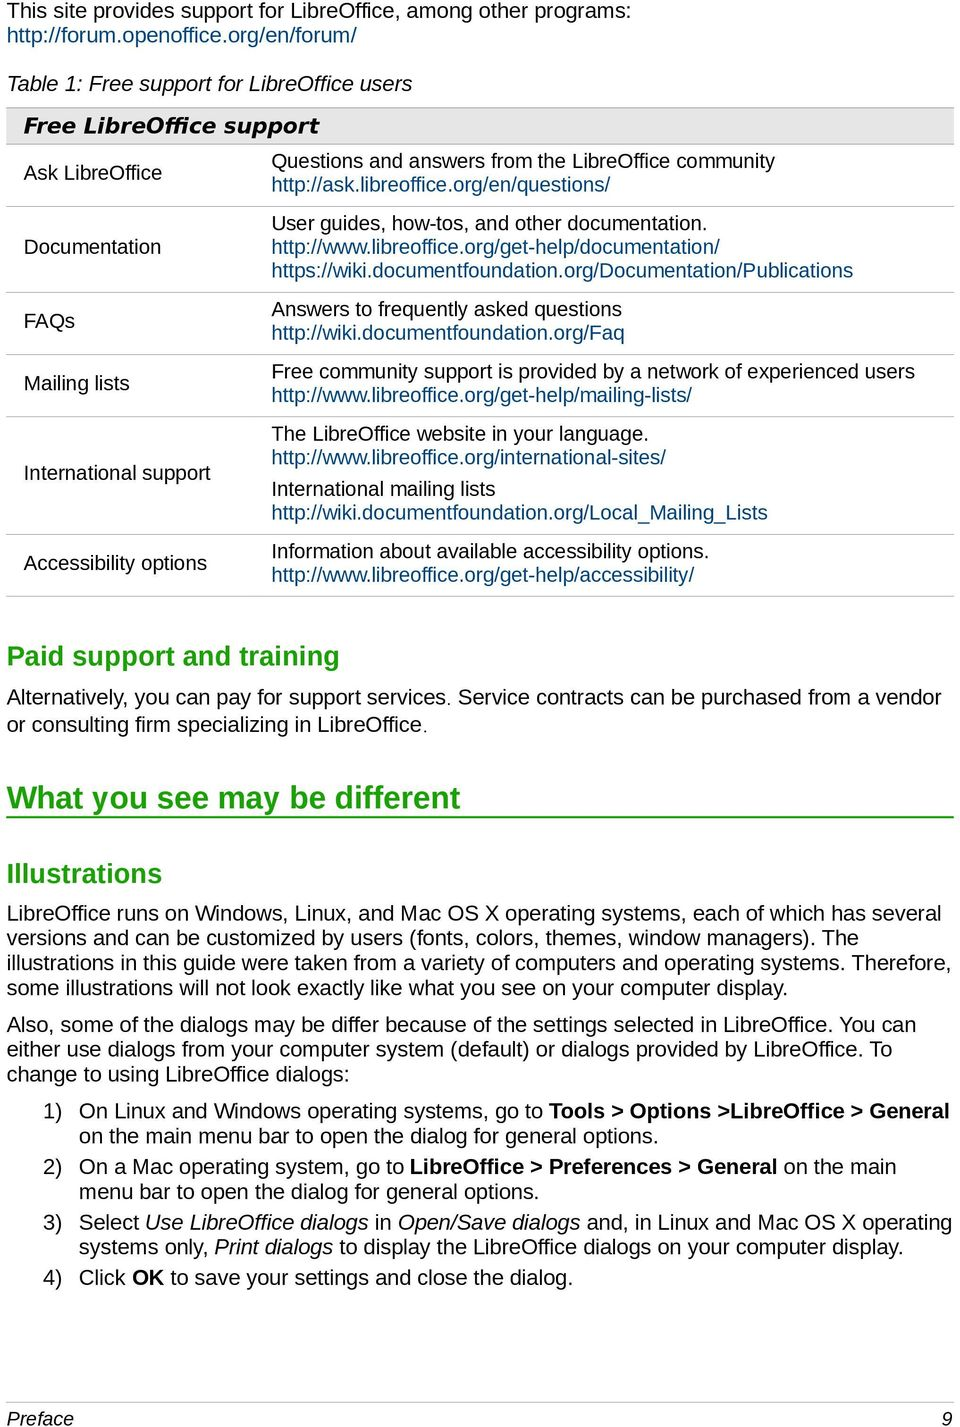 org/en/questions/ Documentation User guides, how-tos, and other documentation. http://www.libreoffice.org/get-help/documentation/ https://wiki.documentfoundation.